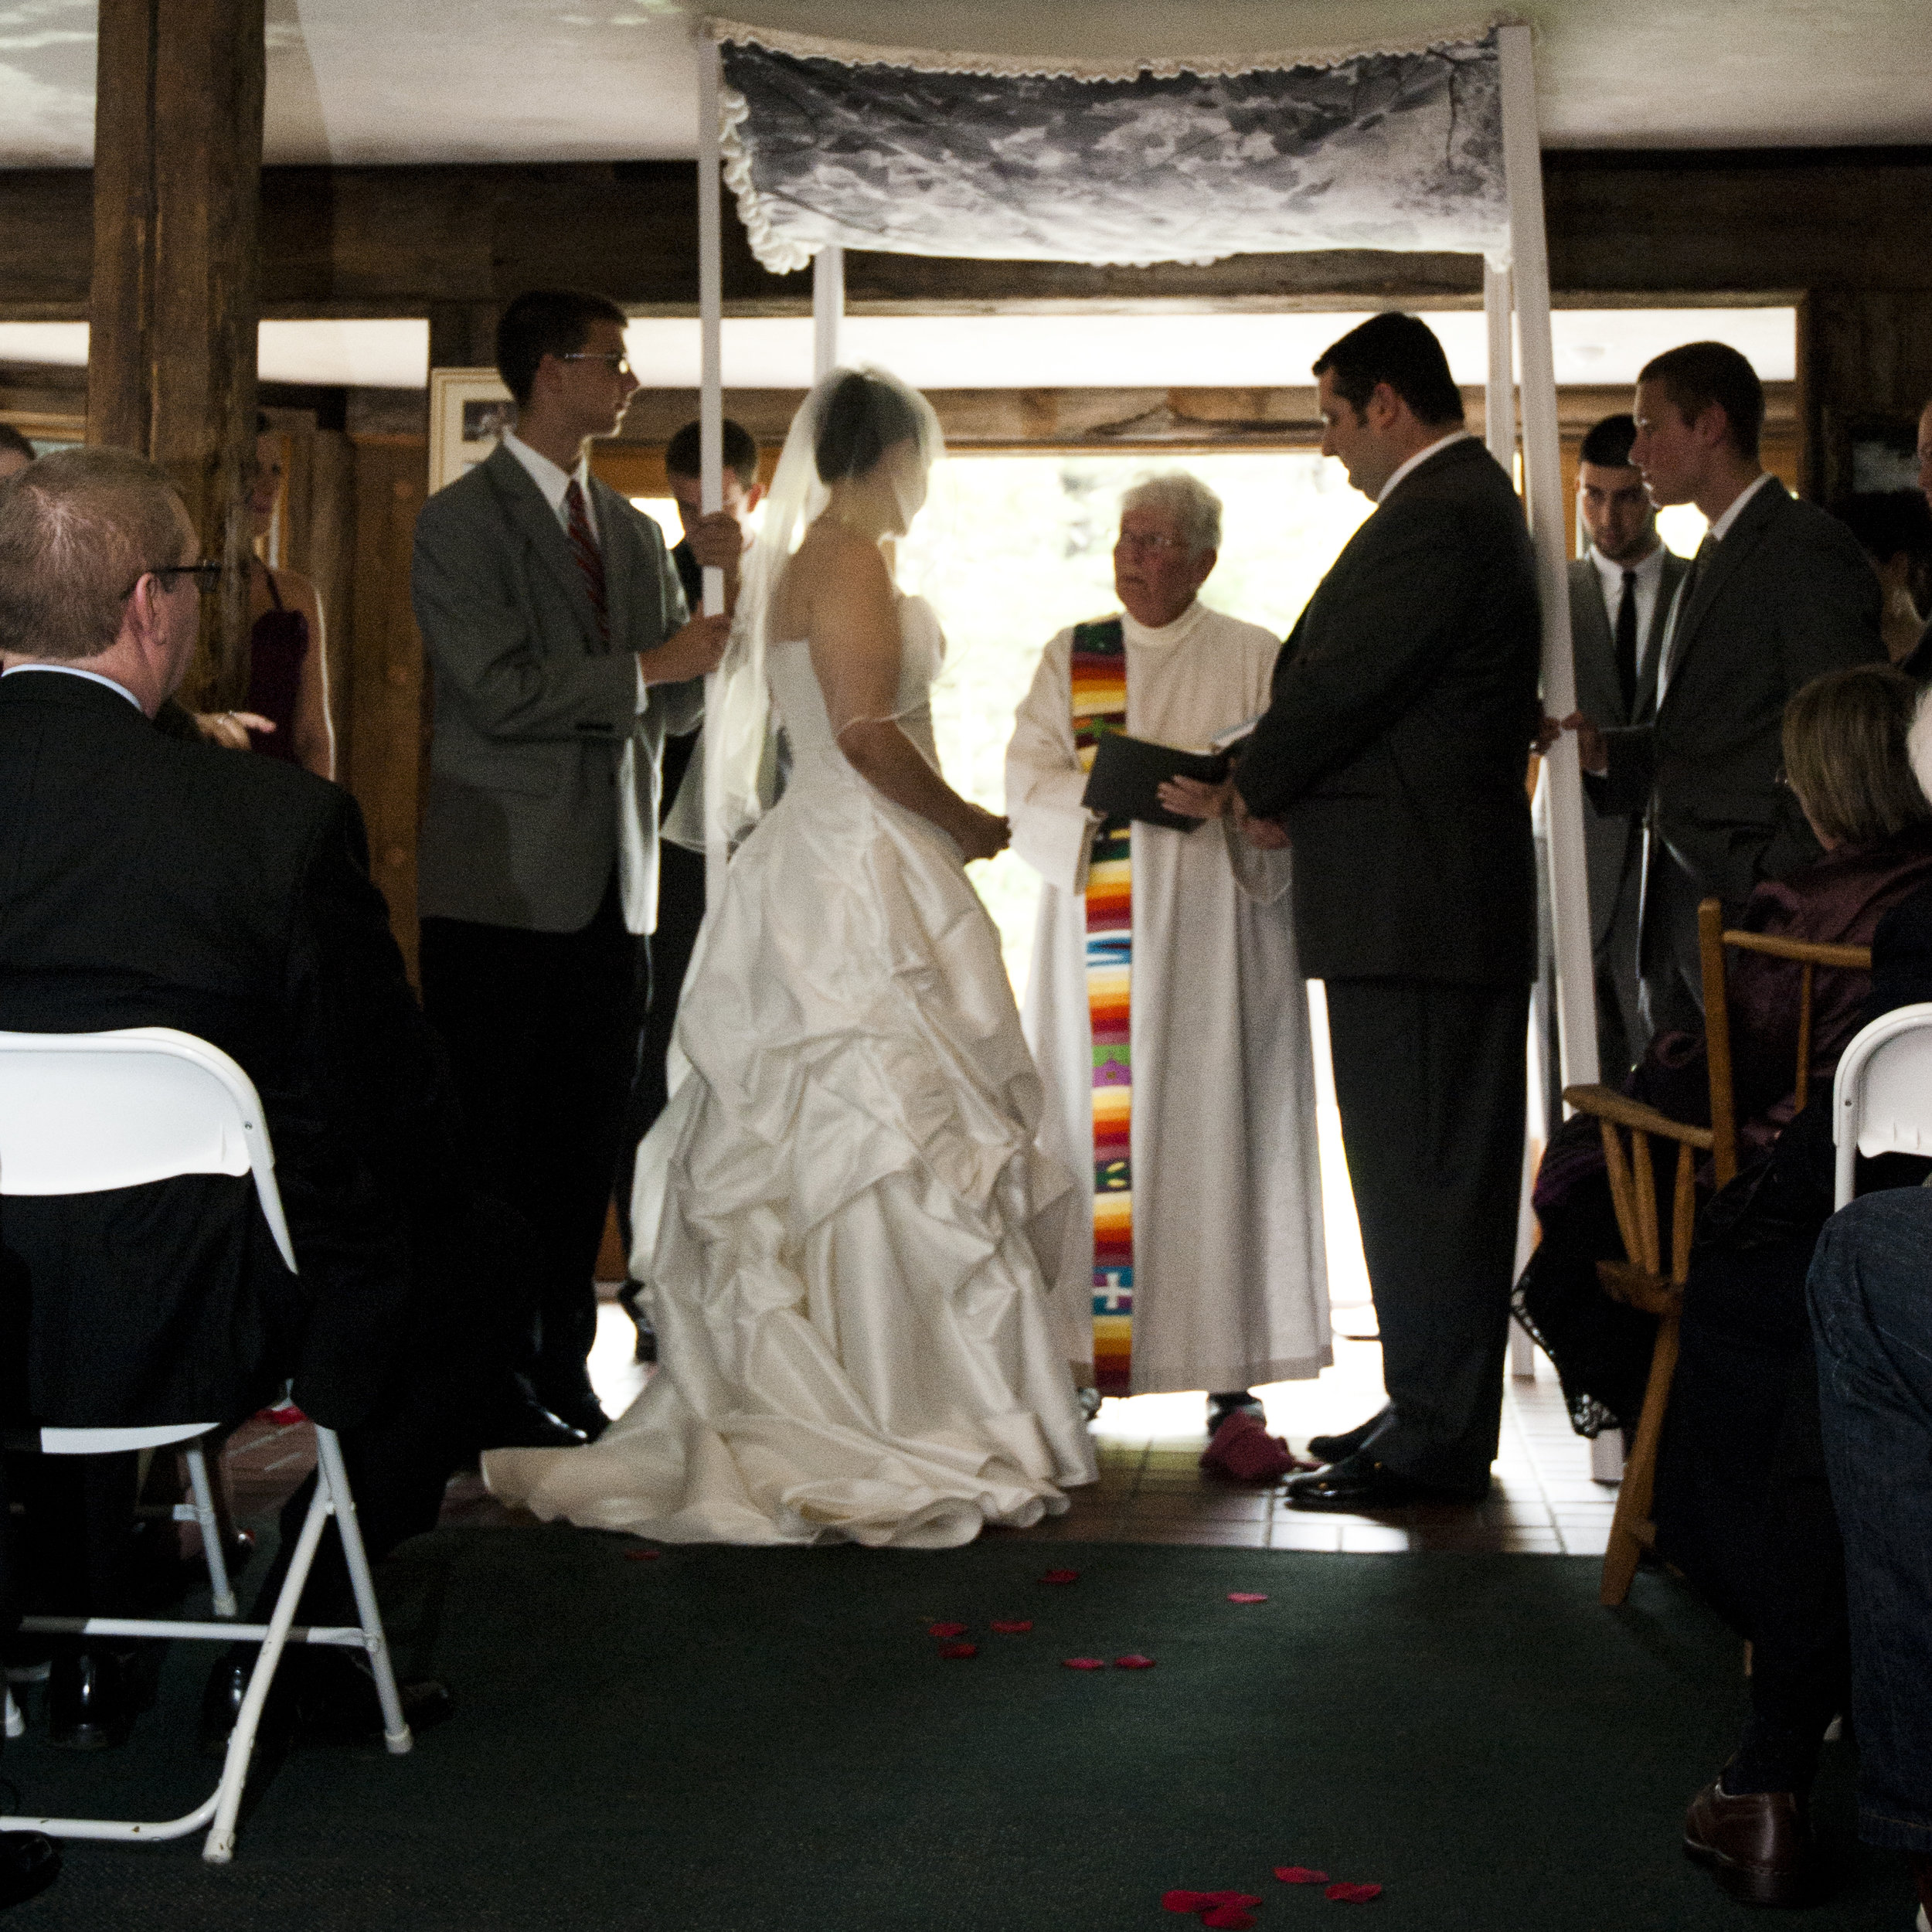 Photograph printed on fabric for a chuppah in a Vermont wedding.